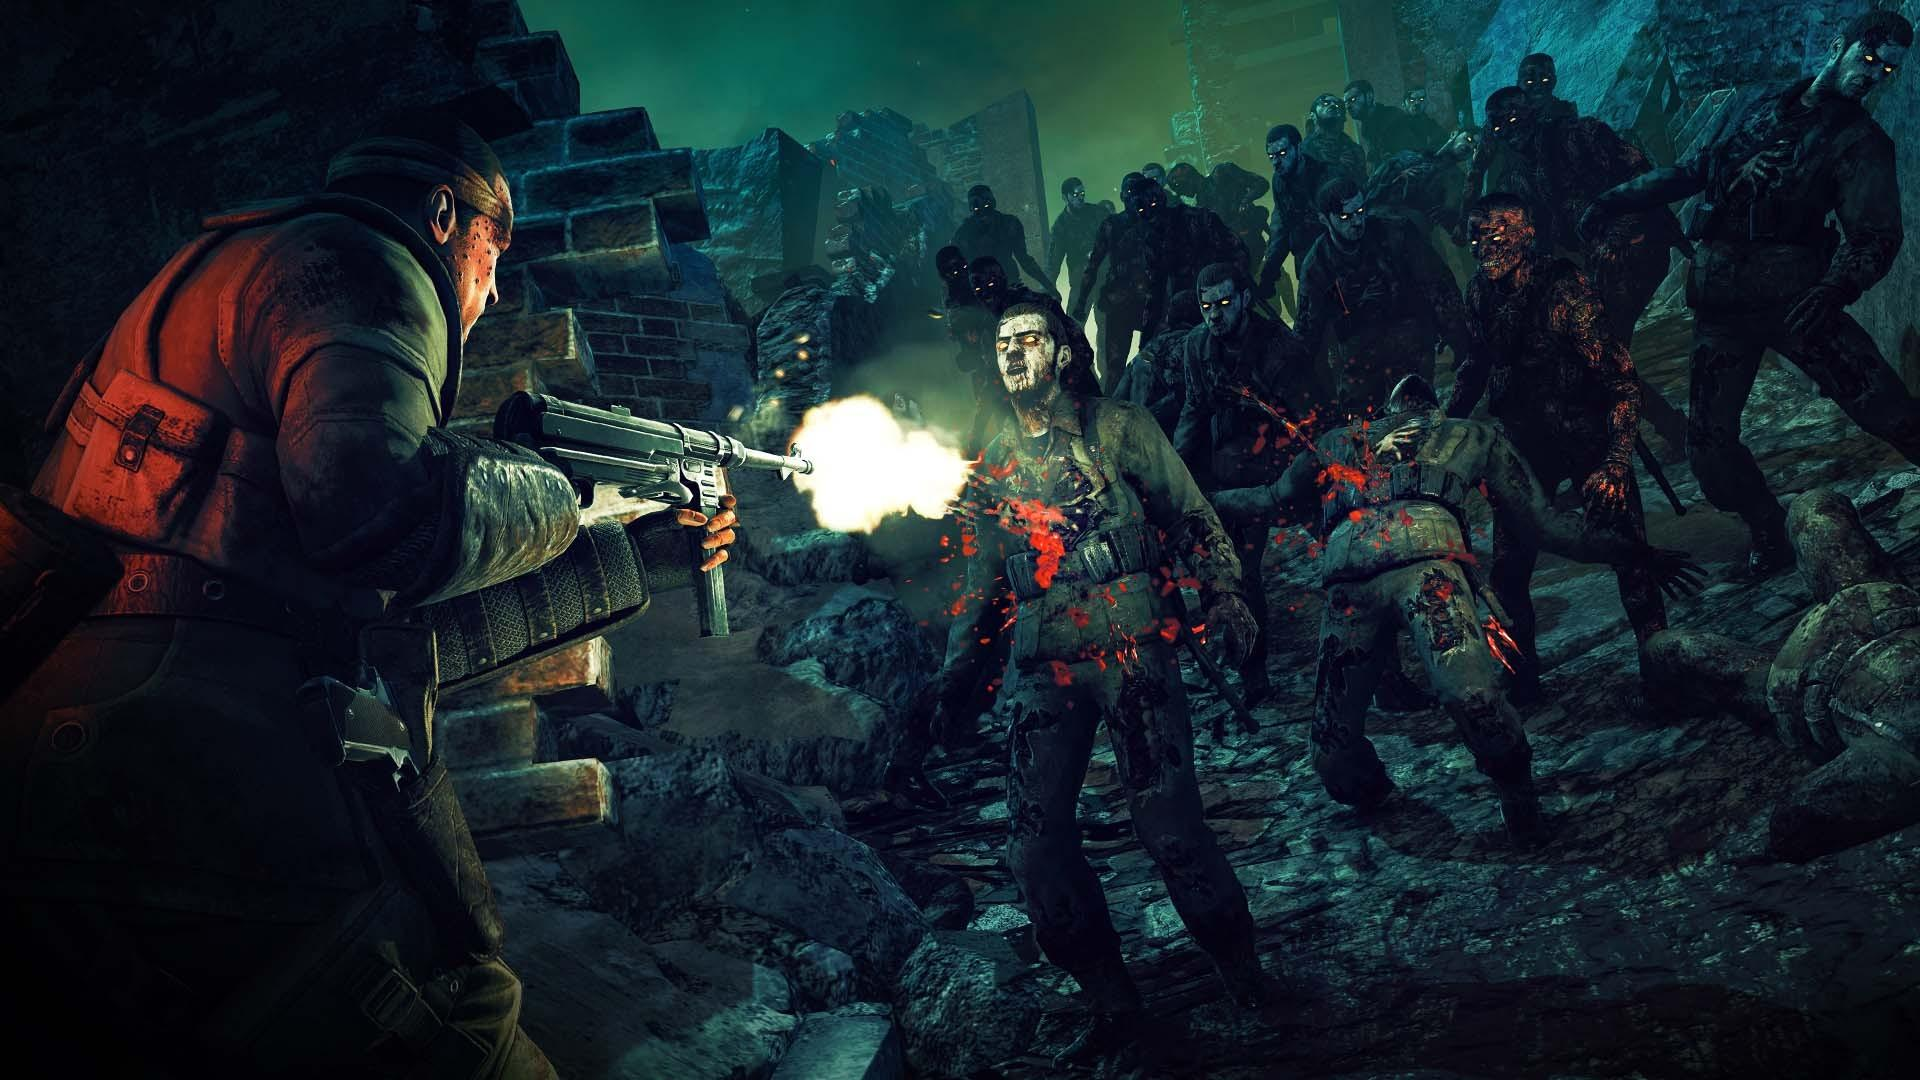 Screenshot for the game Zombie Army 4: Dead War - Super Deluxe Edition [v 2020.10.21.973201 + DLCs] (2020) download torrent RePack from R. G. Mechanics